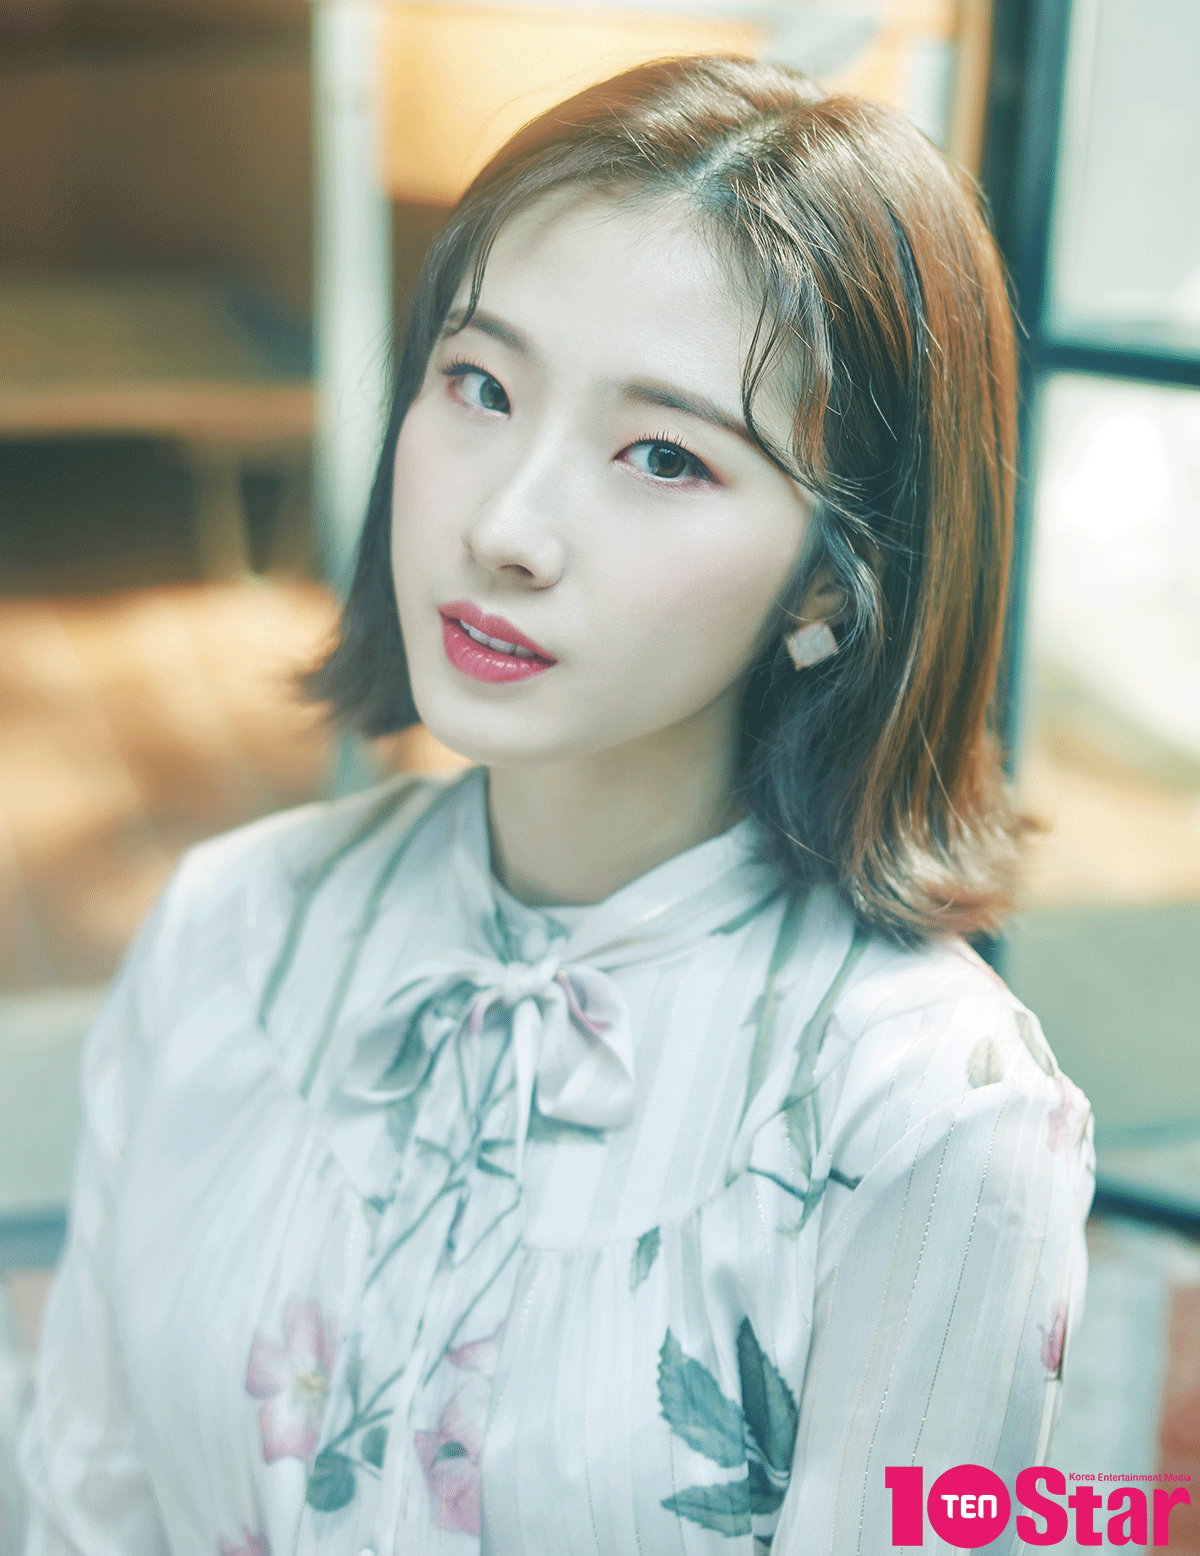 10Star HaSeul.png